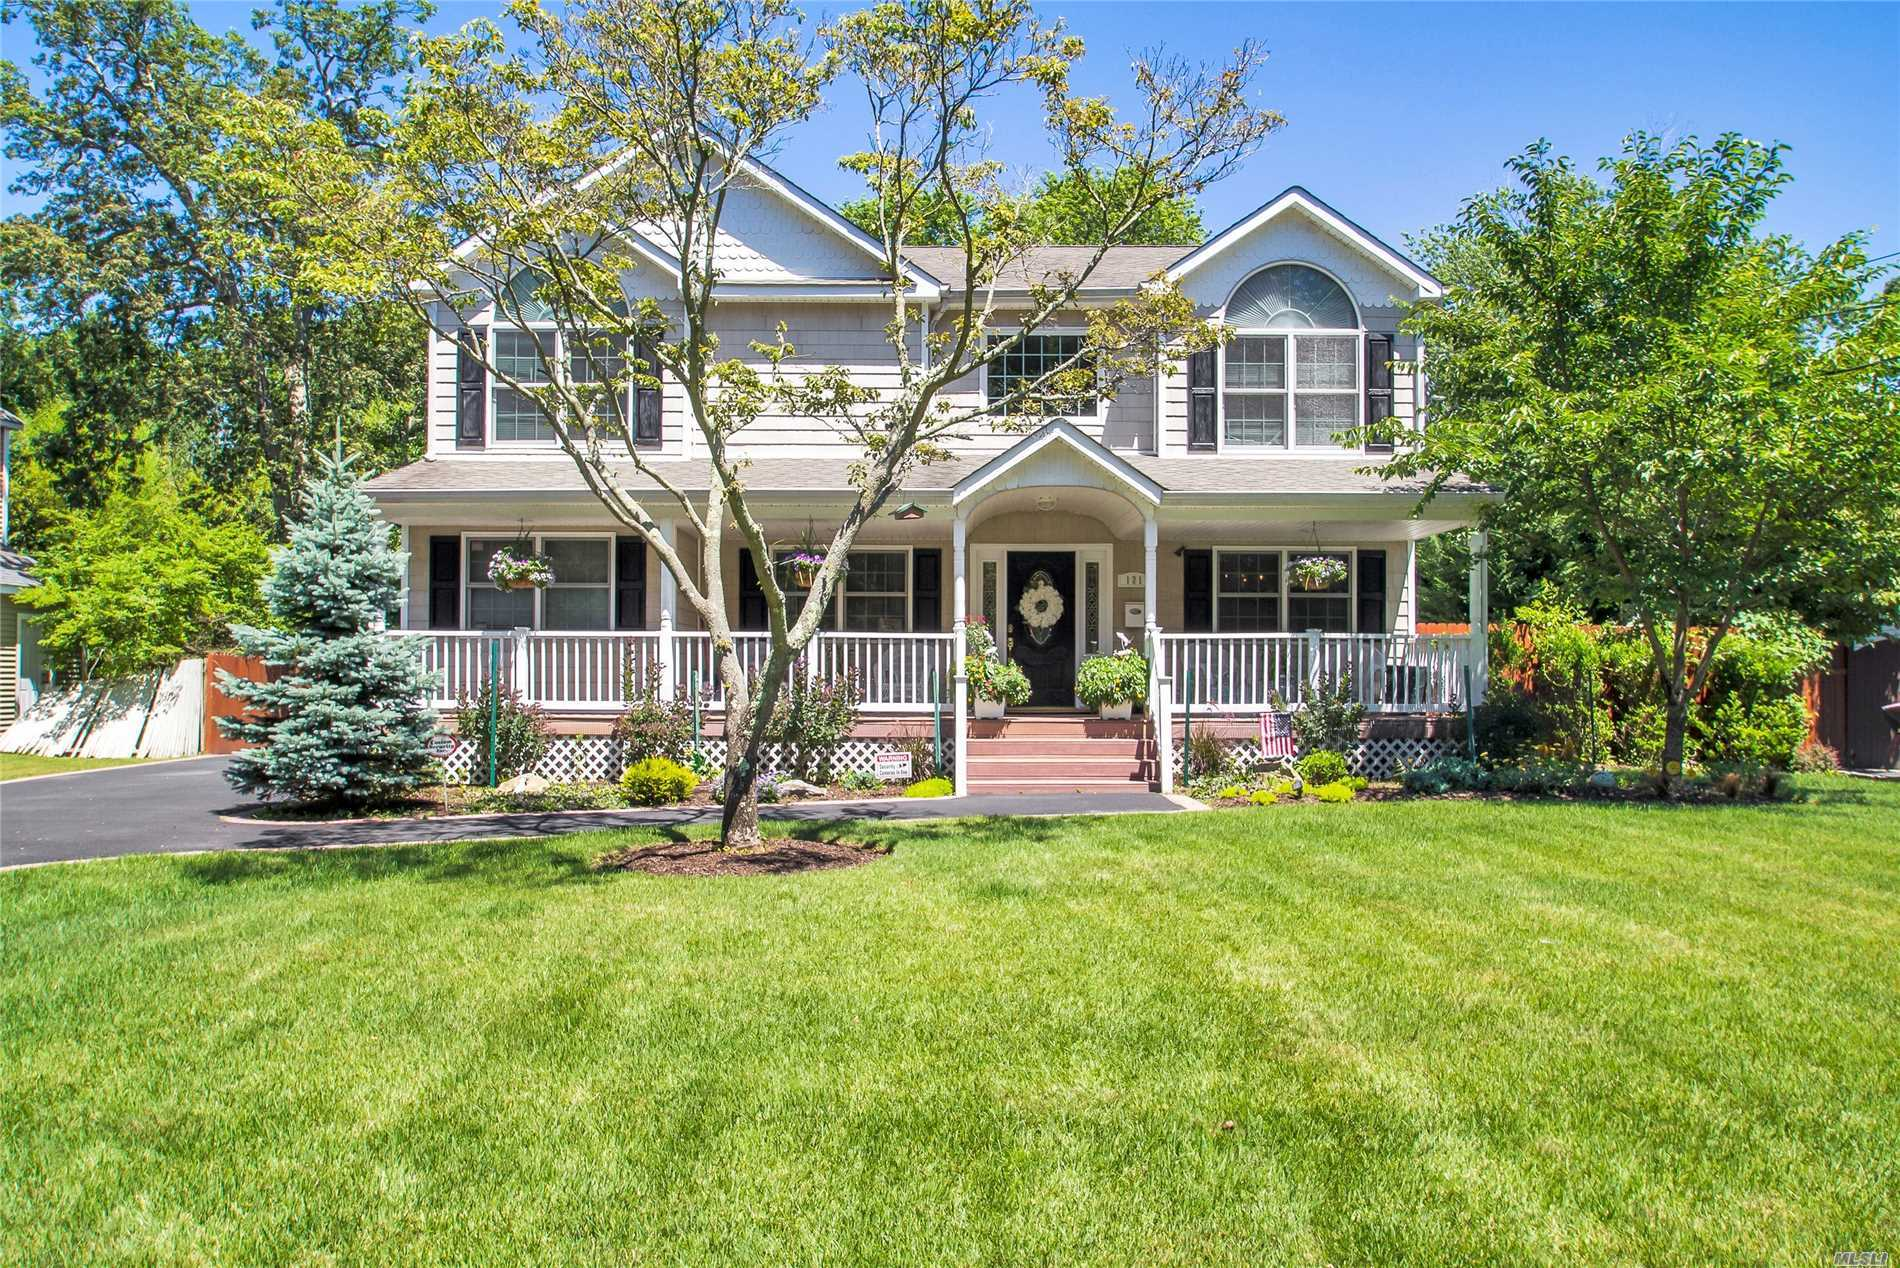 121 Woodland Dr - East Islip, New York